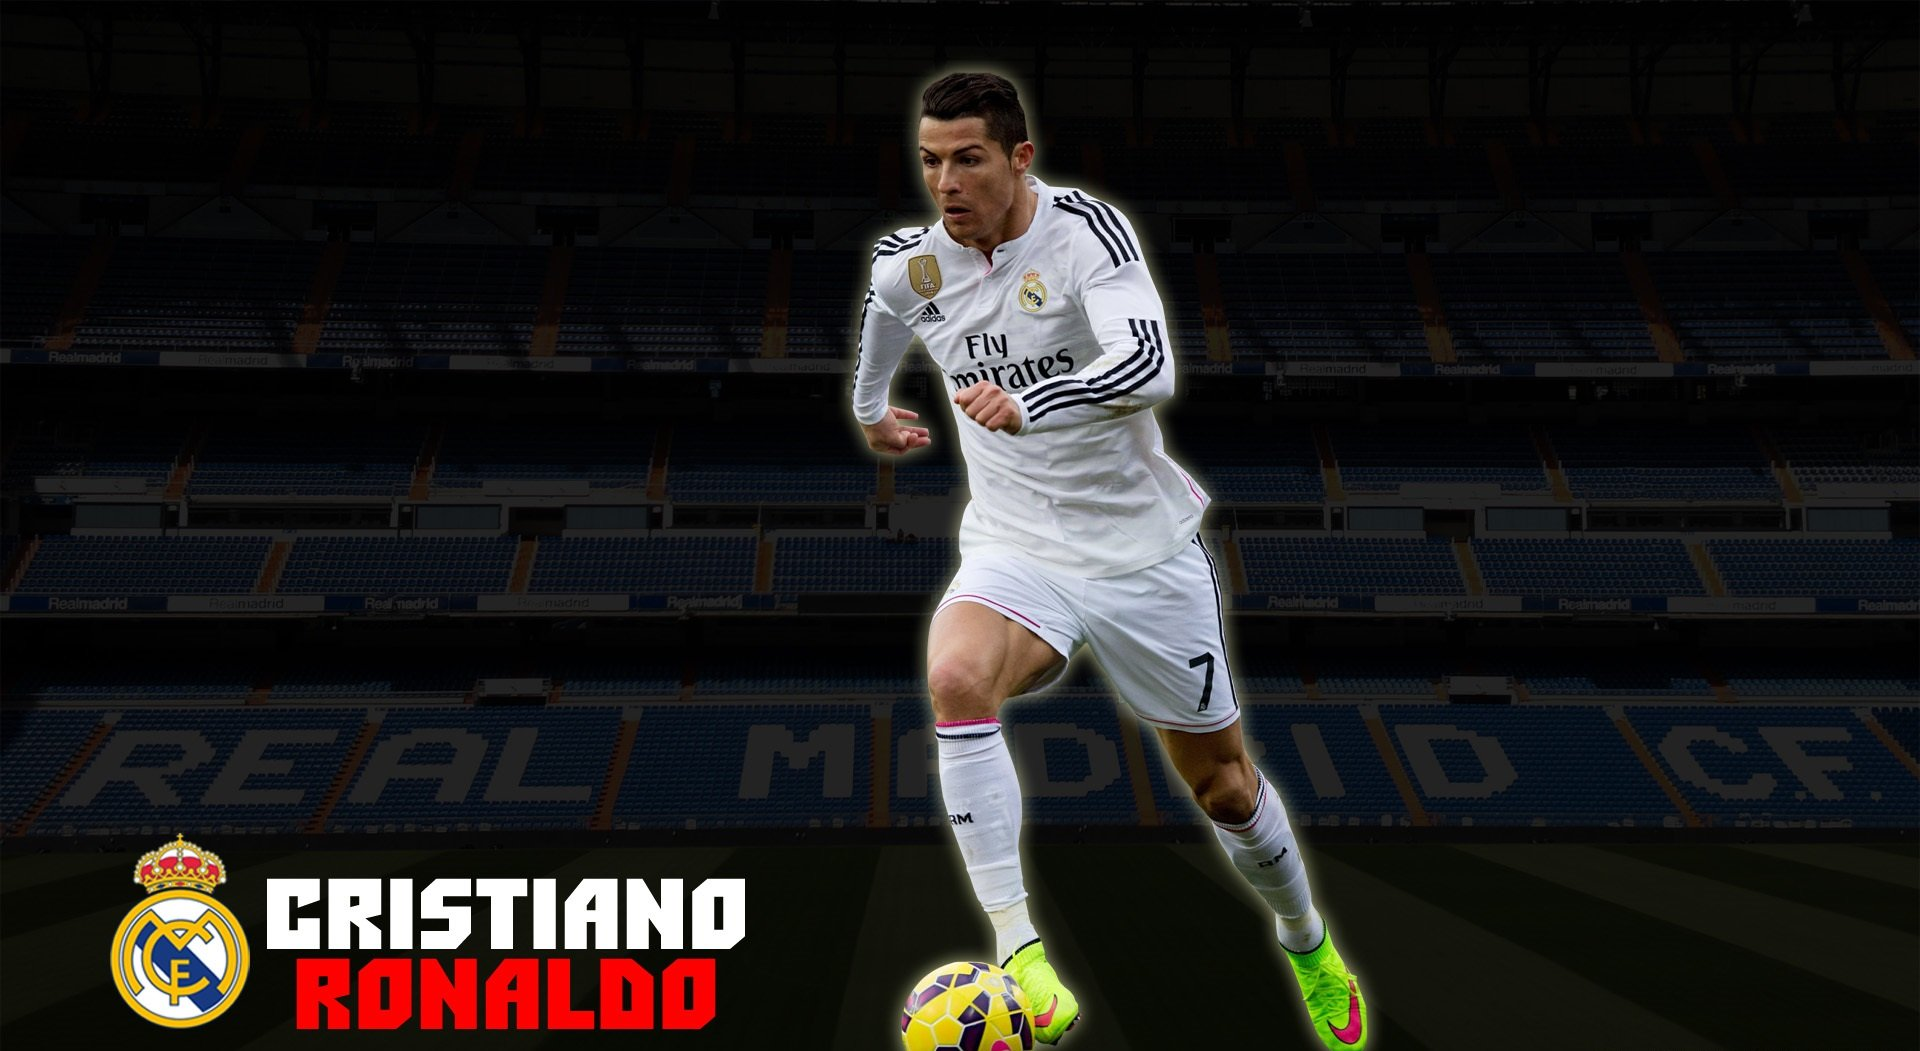 Cristiano Ronaldo 2016 Wallpaper HD Wallpapers Backgrounds Of Your 1920x1051